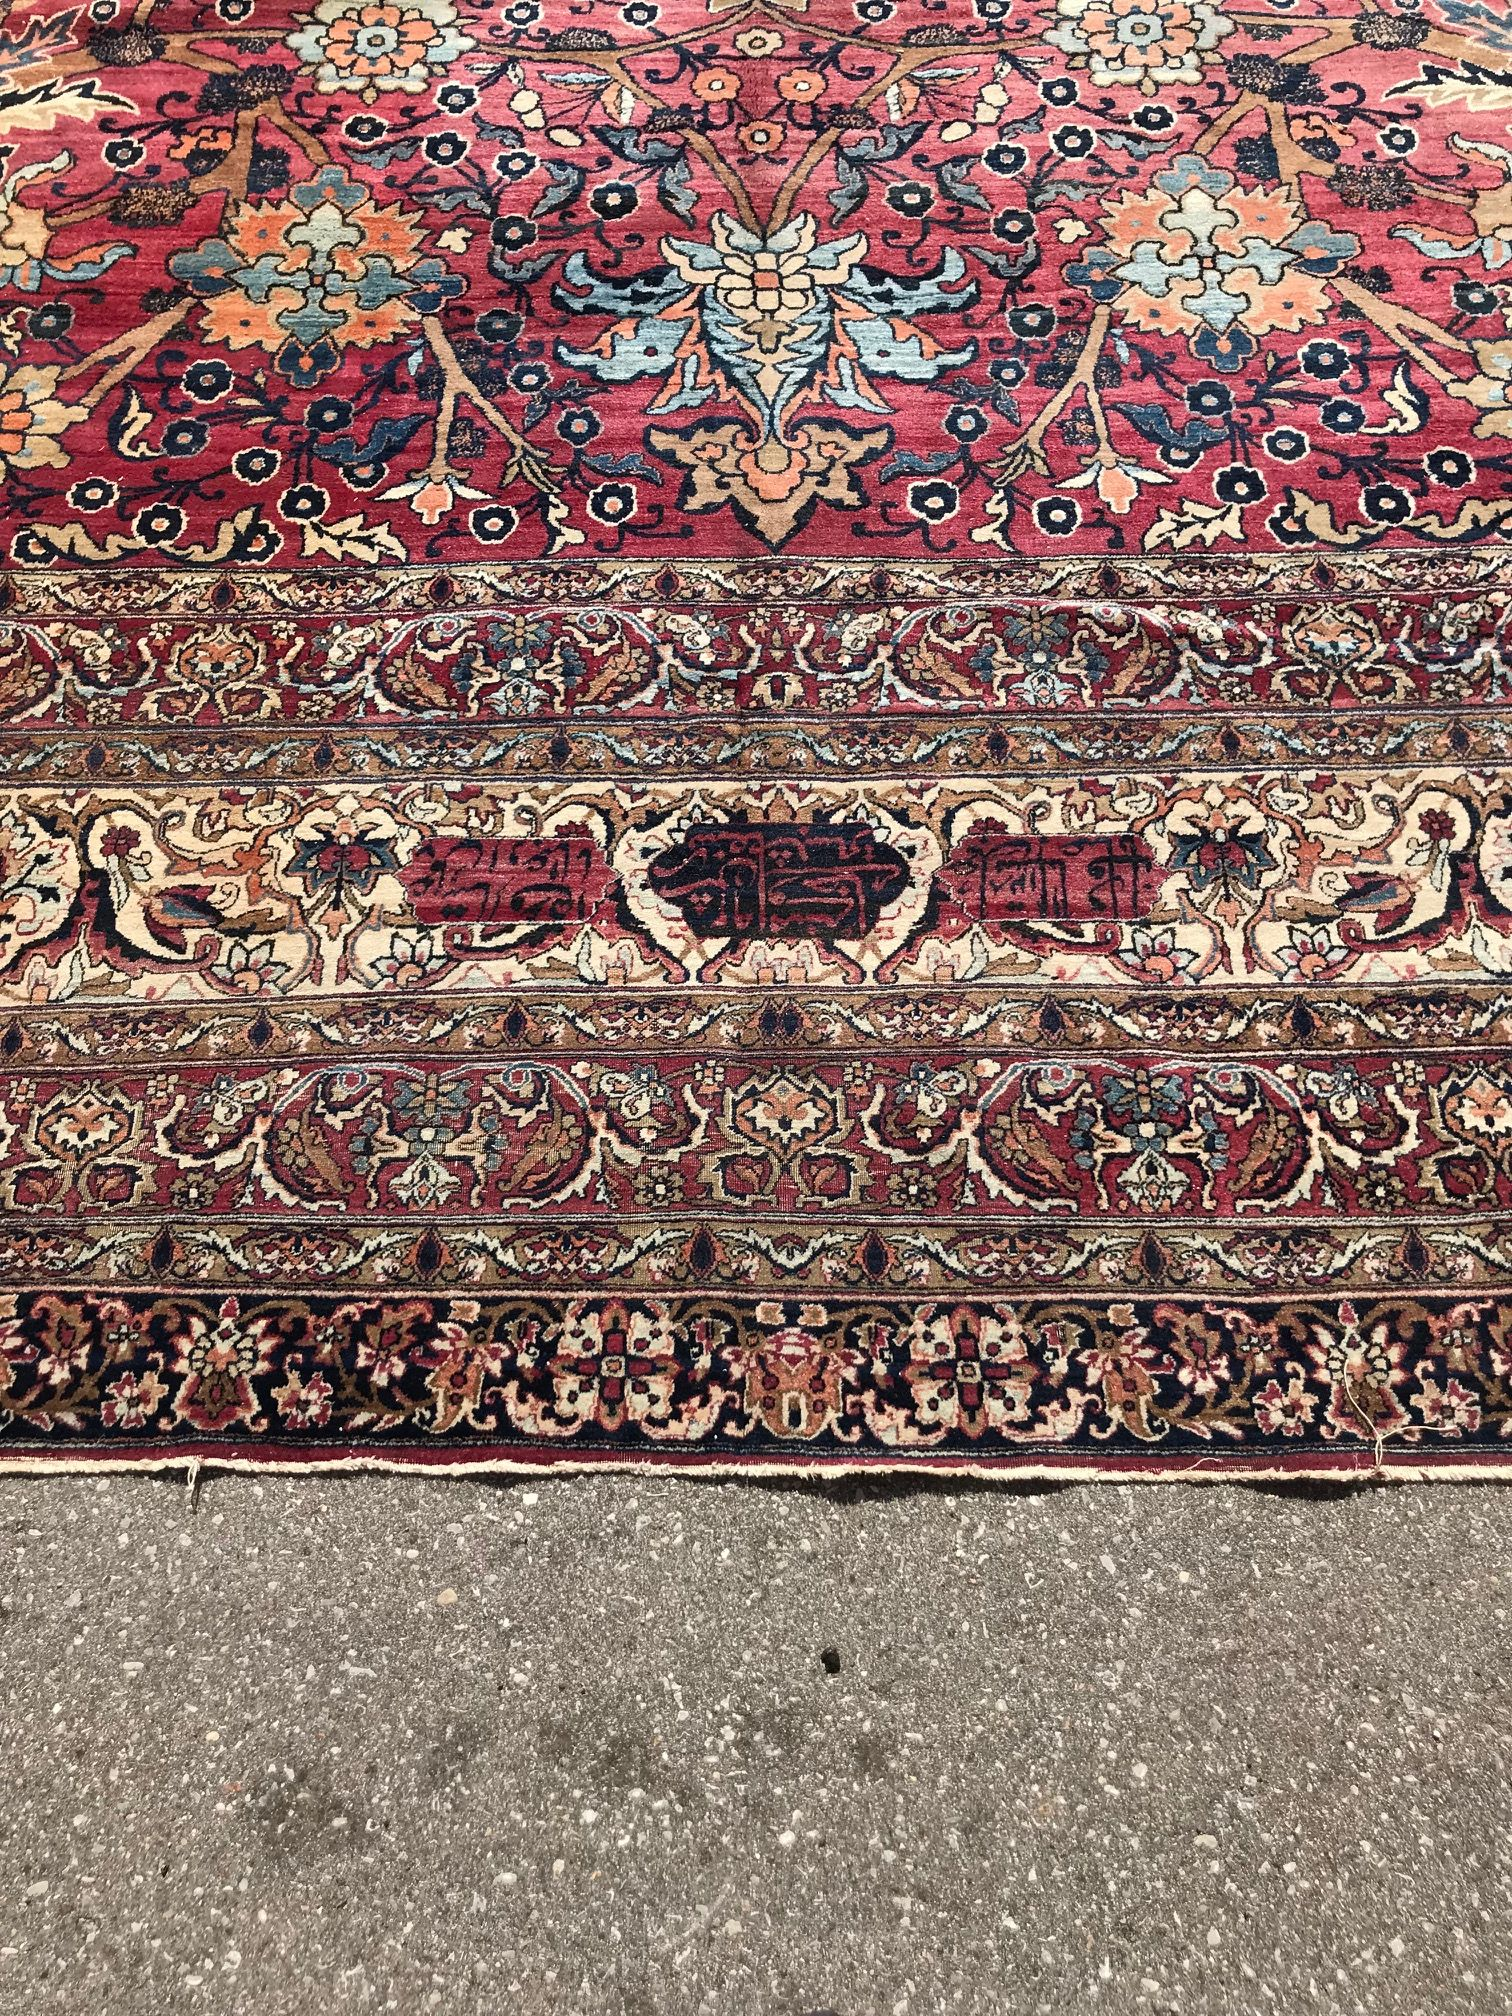 Antique Persian Kermanshah Rug This Luxurious Over Sized Rug